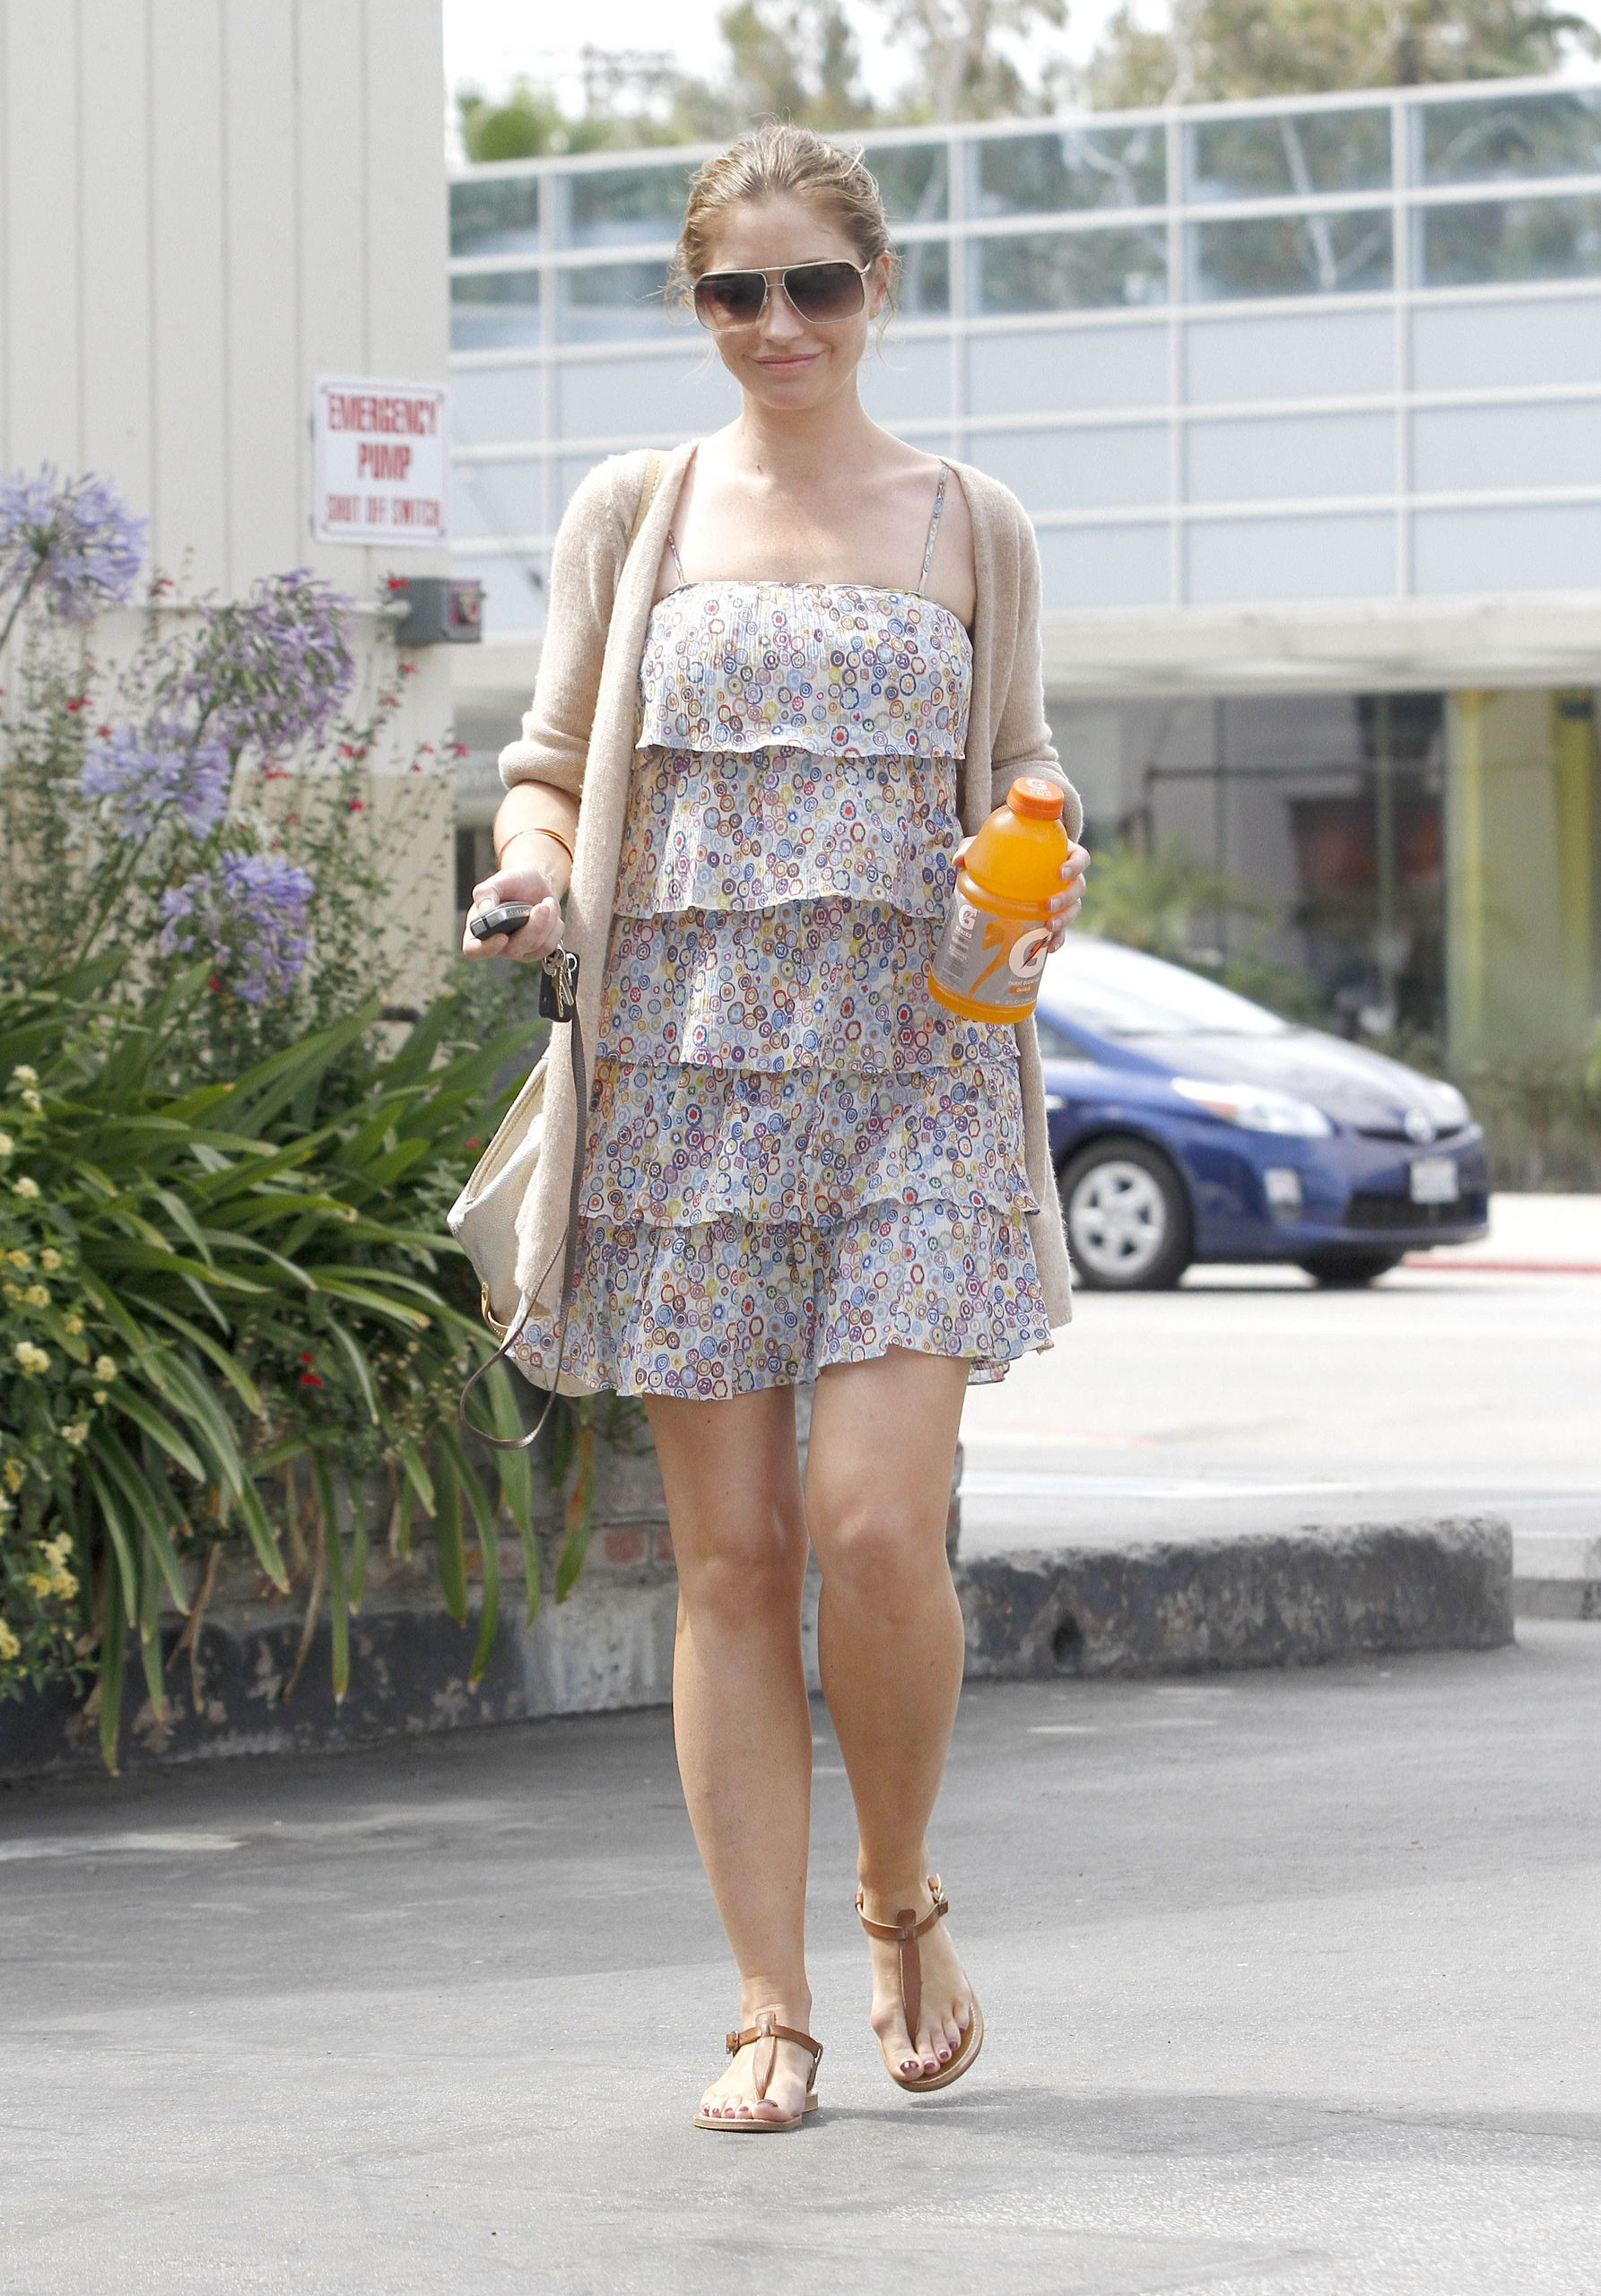 How To Use Noxzema >> Out & About In West Hollywood 07 07 2011 - Rebecca ...